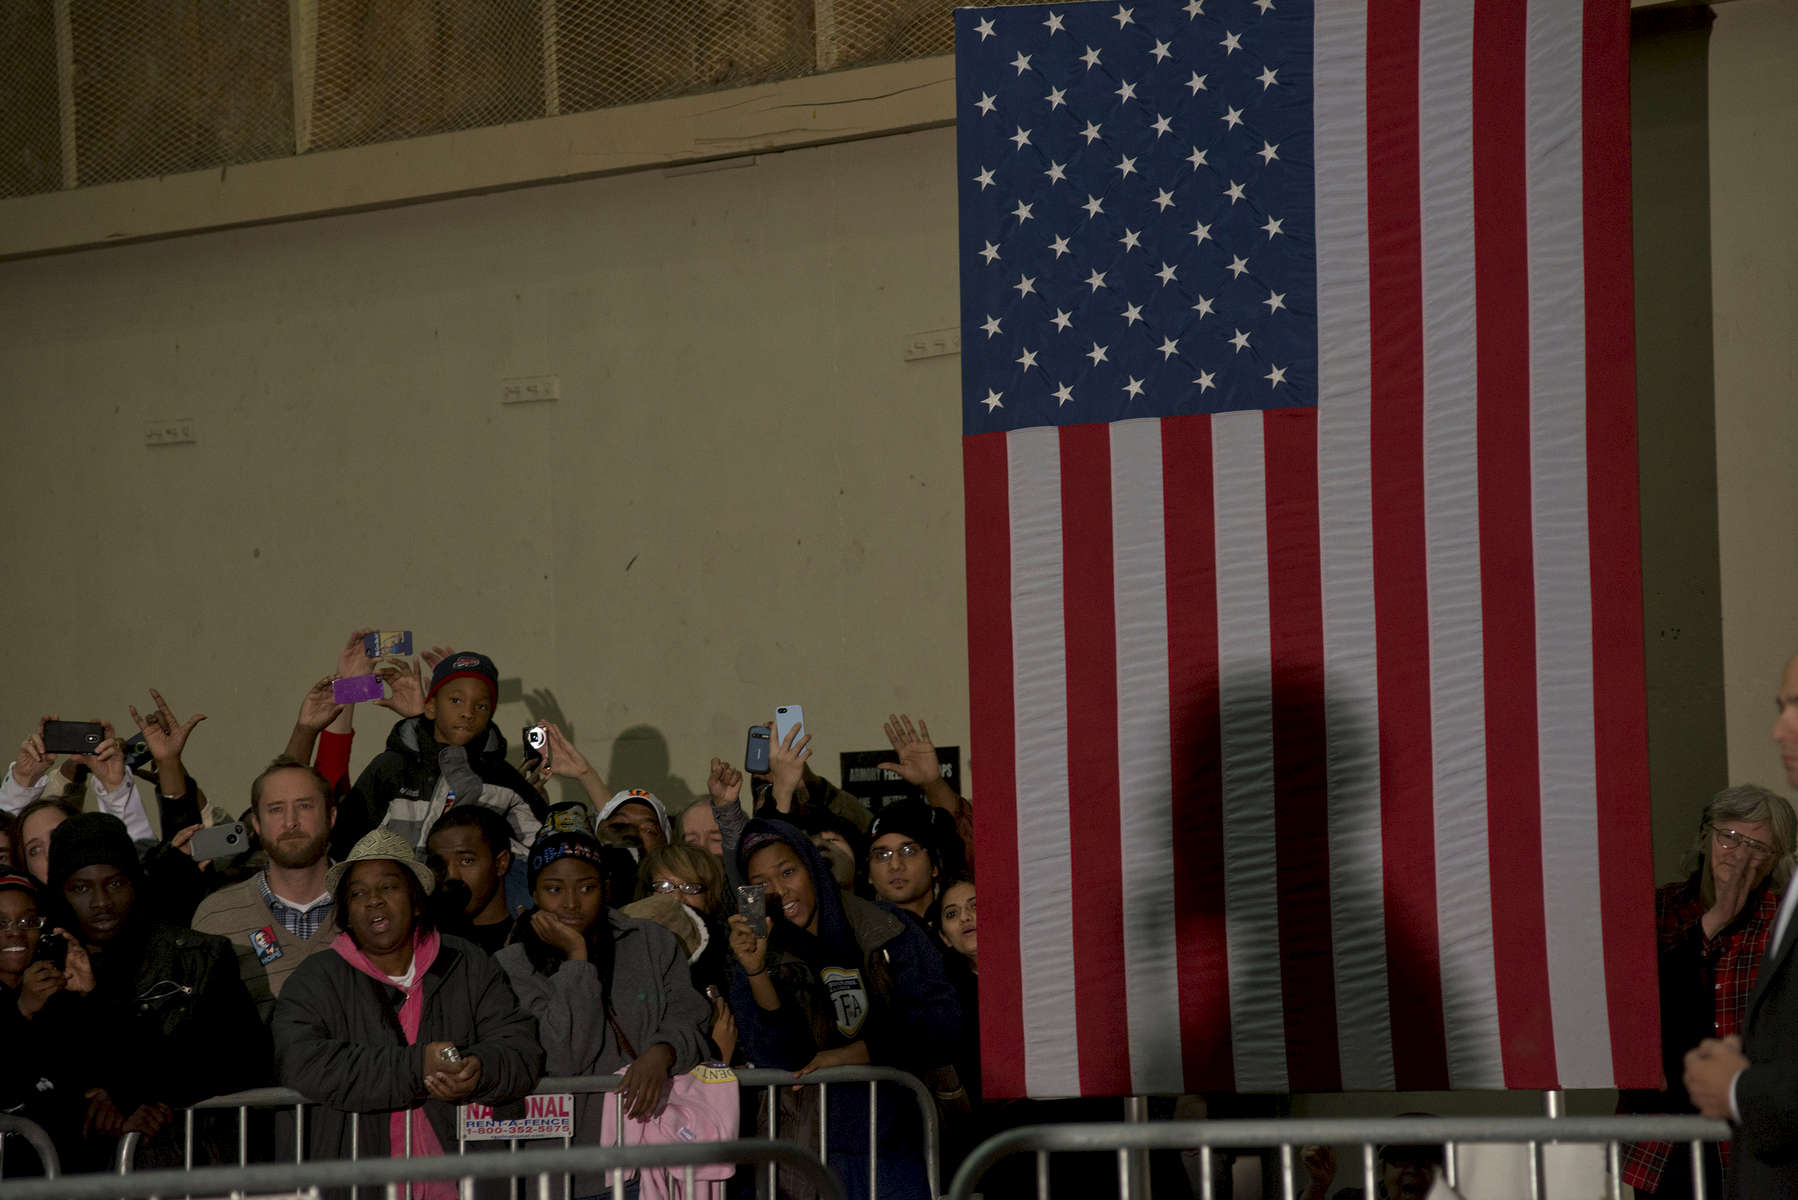 November 4, 2012 - Cincinnati, OH: President Barack Obama's shadow is cast upon an American flag as he speaks to an overflow crowd before a rally in Cincinnati.  (Scout Tufankjian for Obama for America/Polaris)